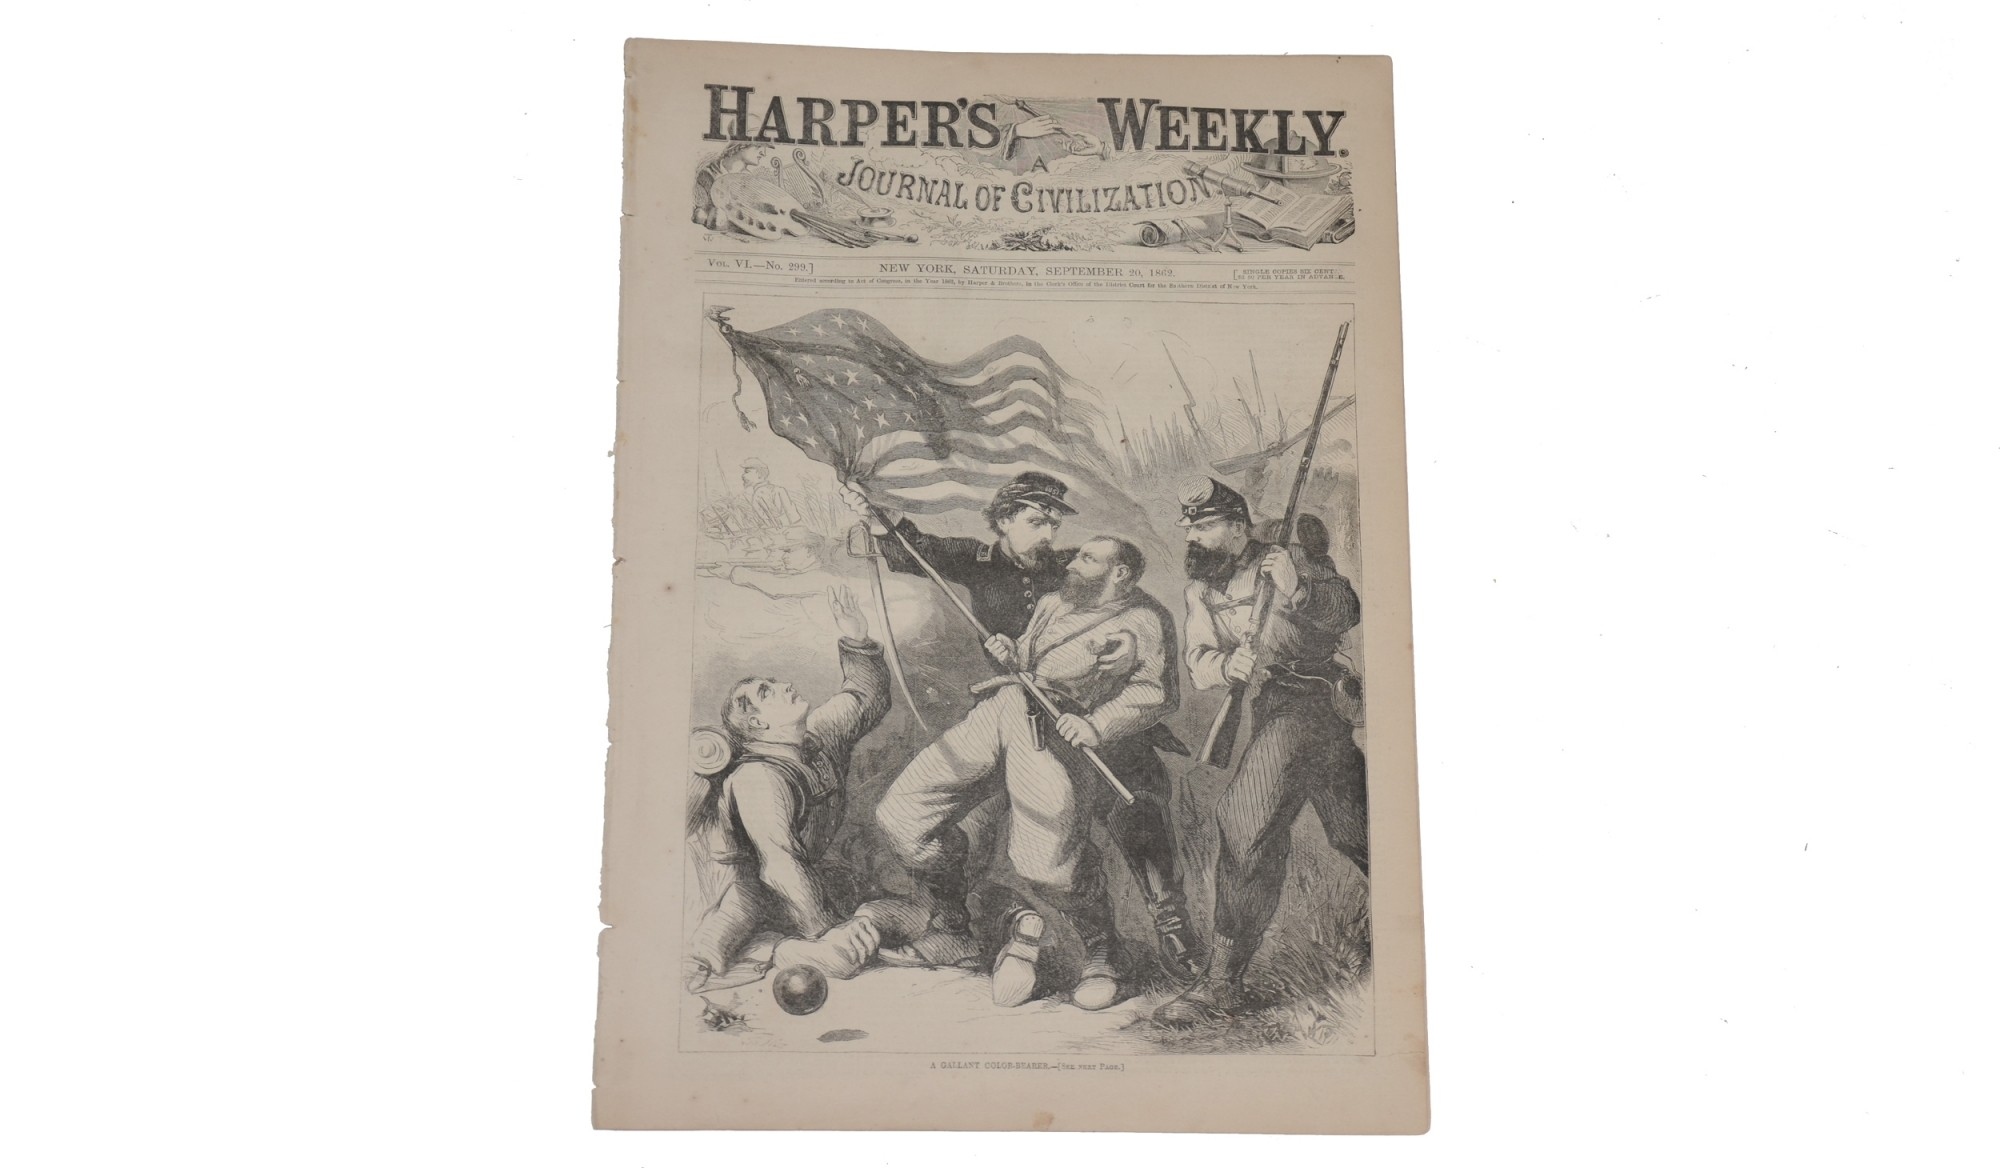 HARPER'S WEEKLY, DATED SEPTEMBER 20, 1862 - ''A GALLANT COLORBEARER""